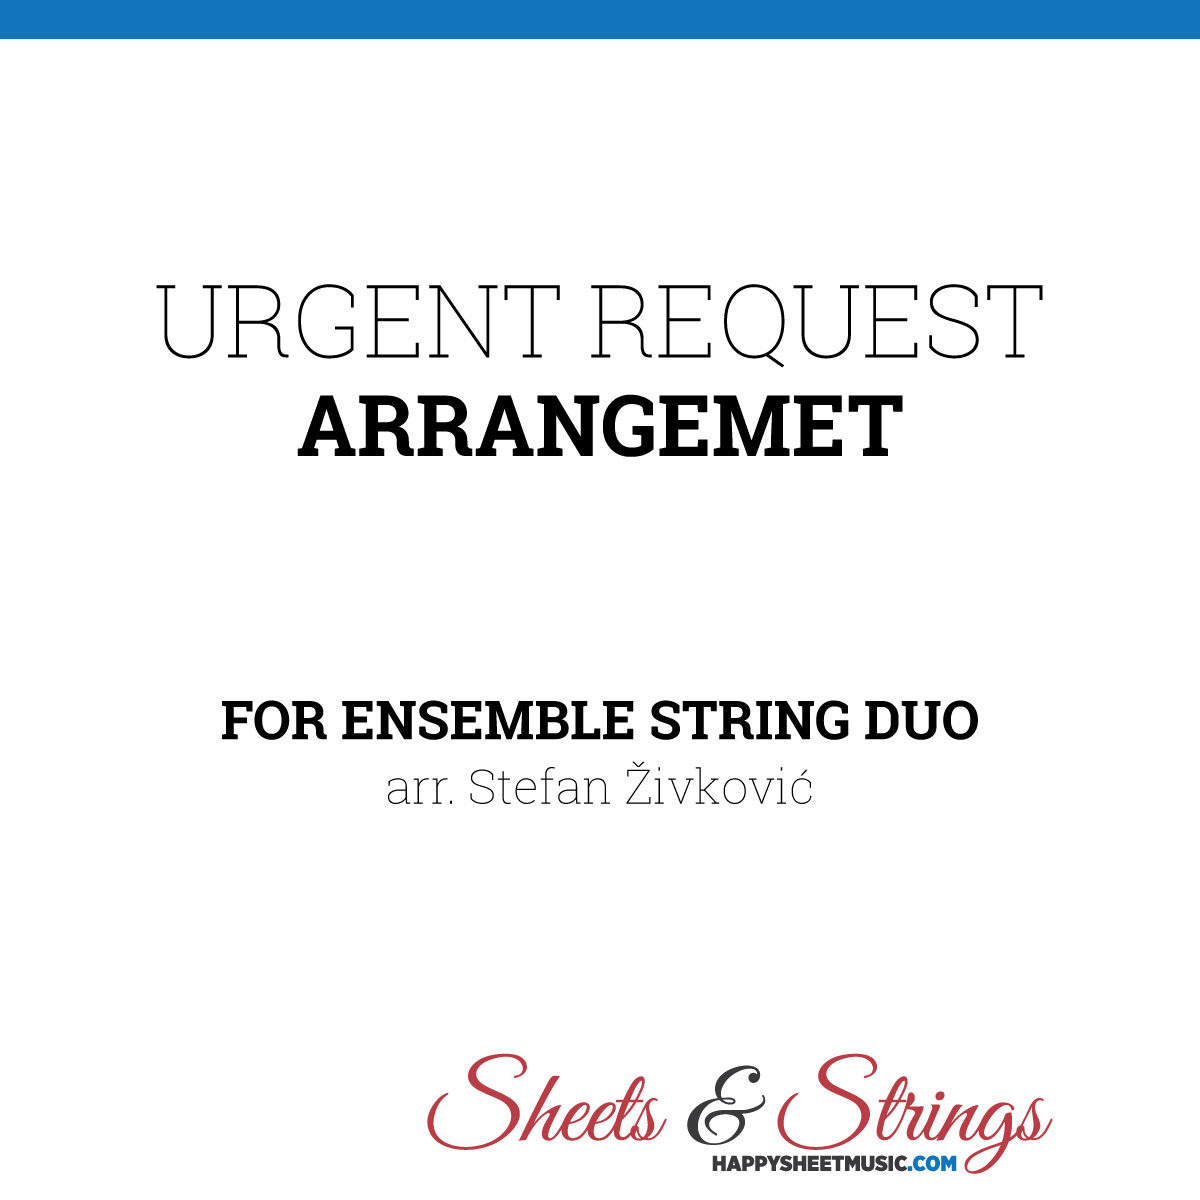 Urgent Request for String Duo music arrangement